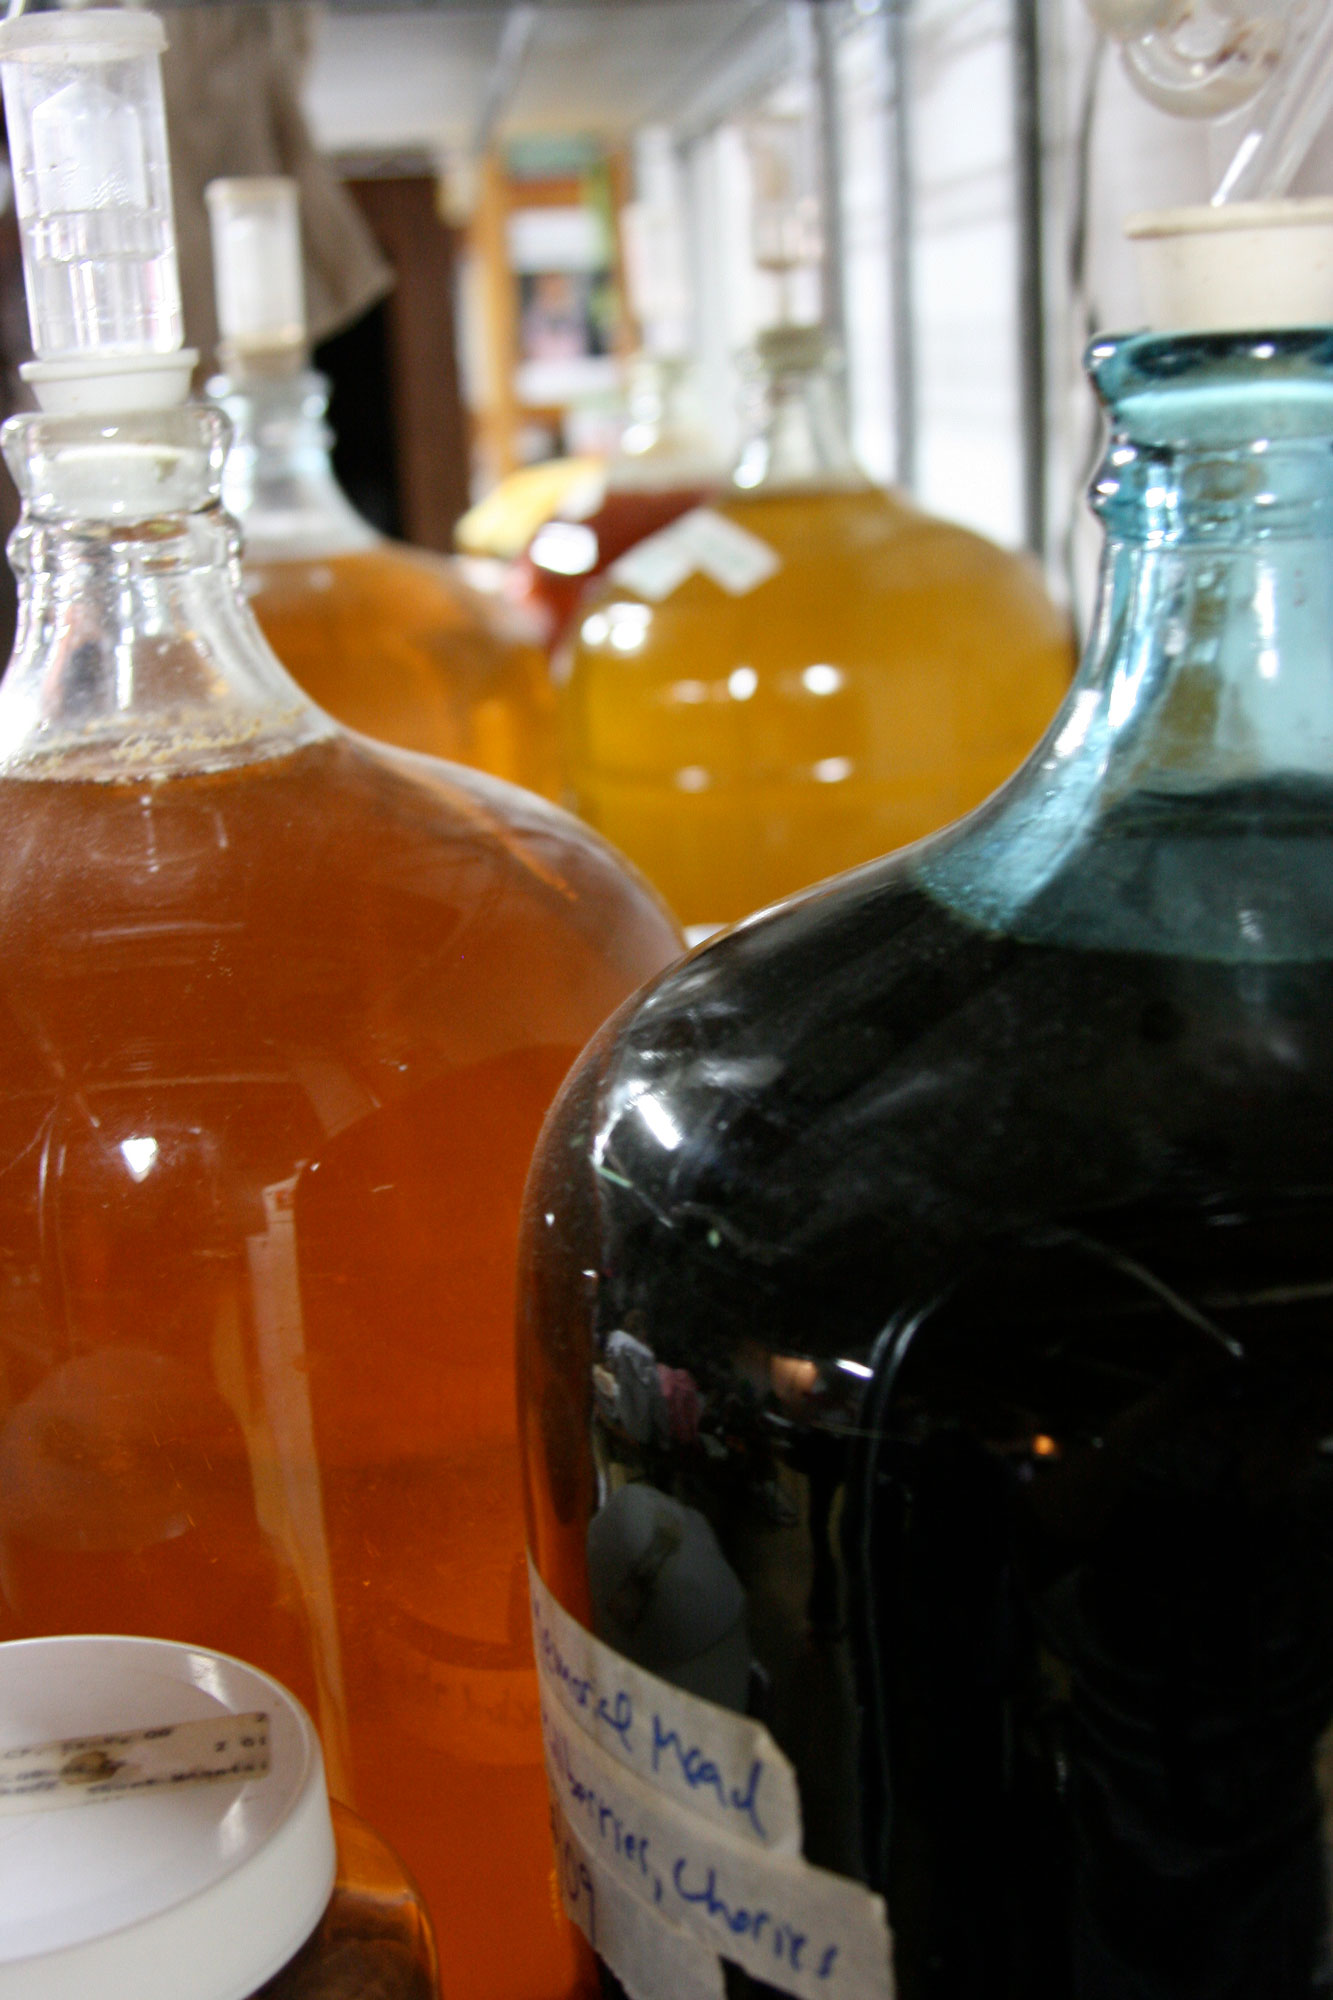 Carboys of fermenting mead